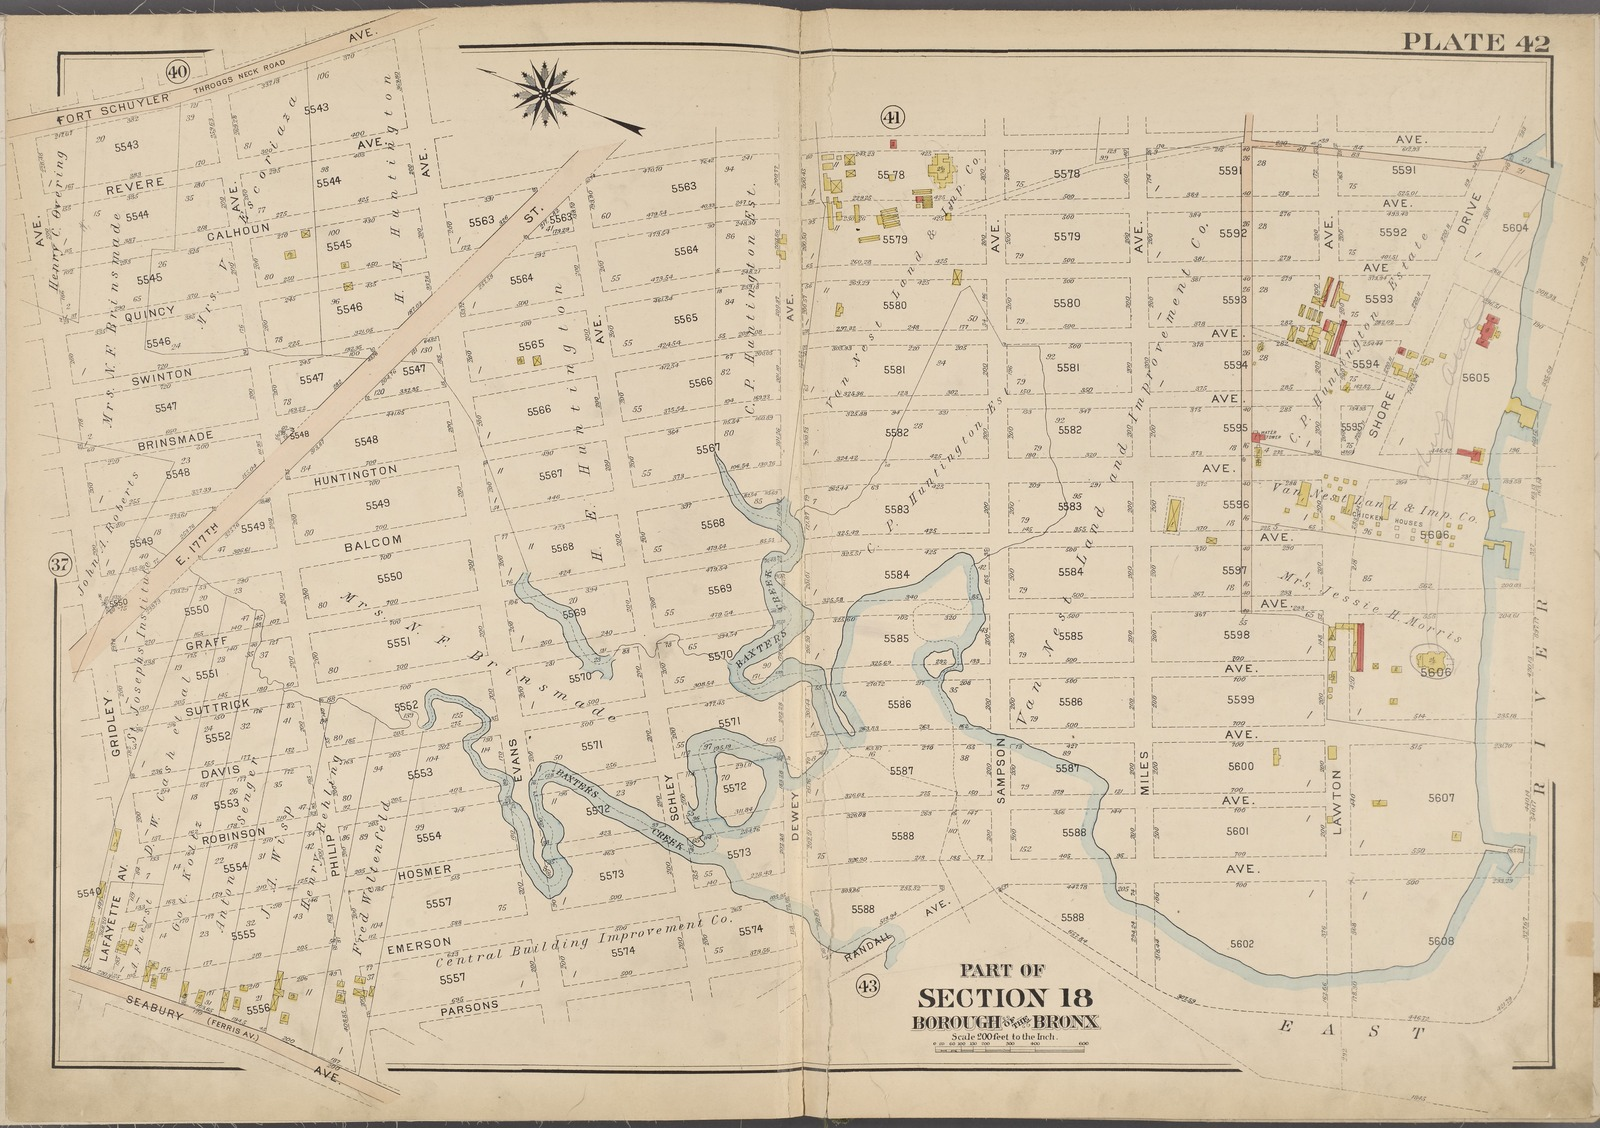 Plate 42 Map Bounded By Fort Schuyler Ave East River Seabury Ave